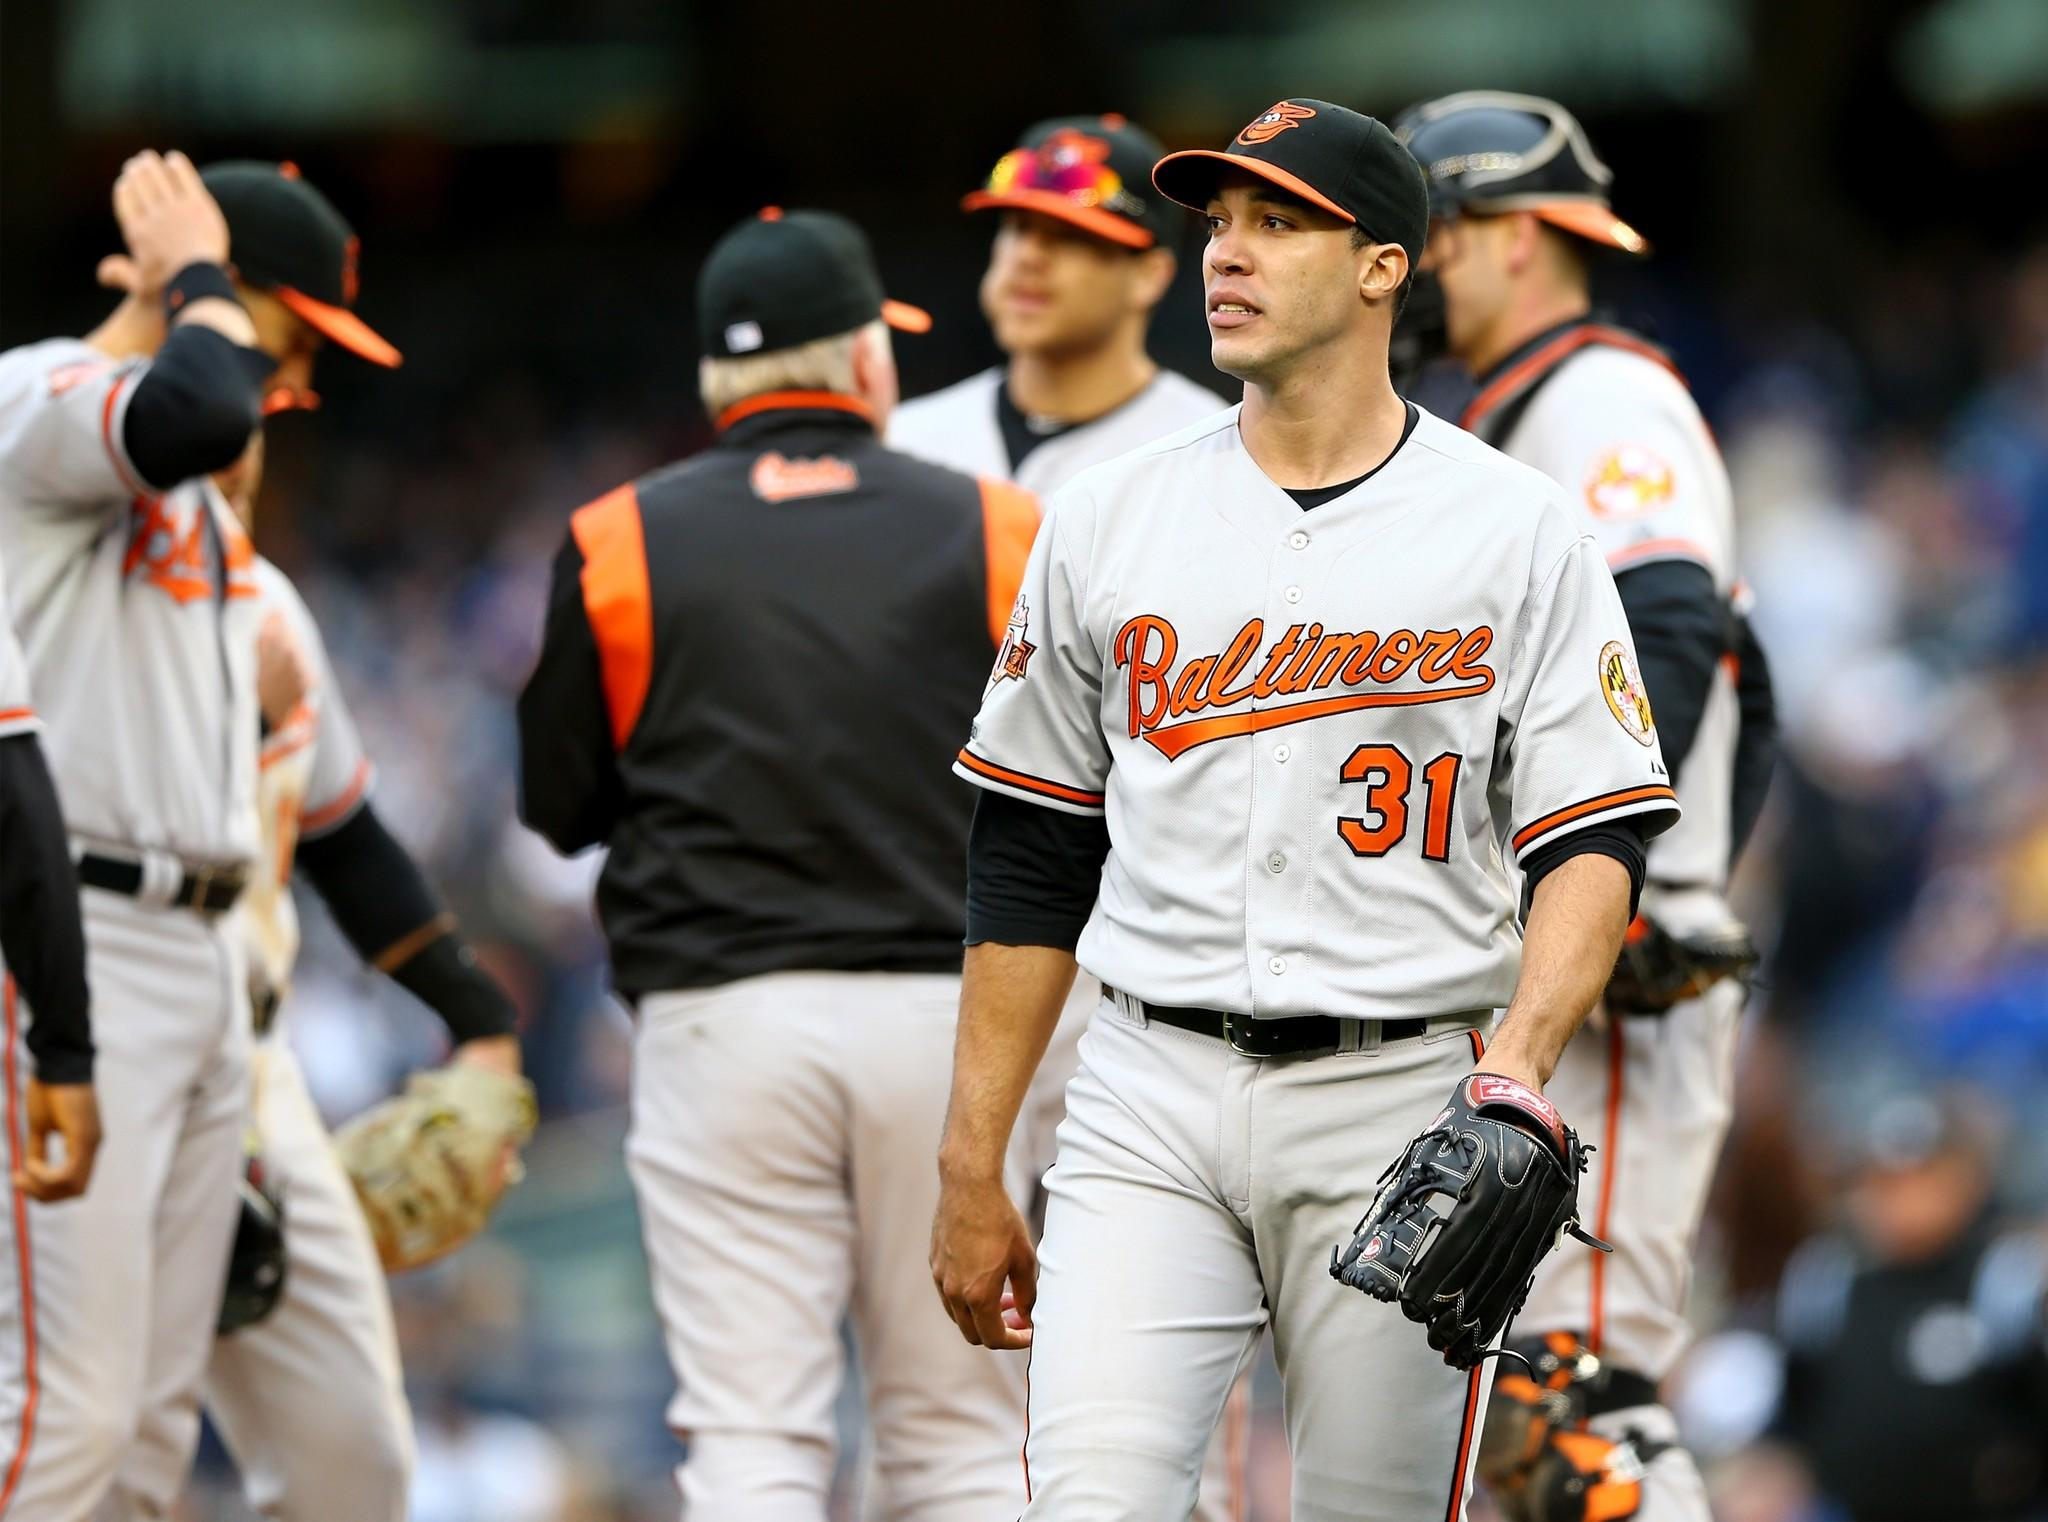 Ubaldo Jimenez didn't get out of the fifth inning in a loss to the Yankees on April 7.